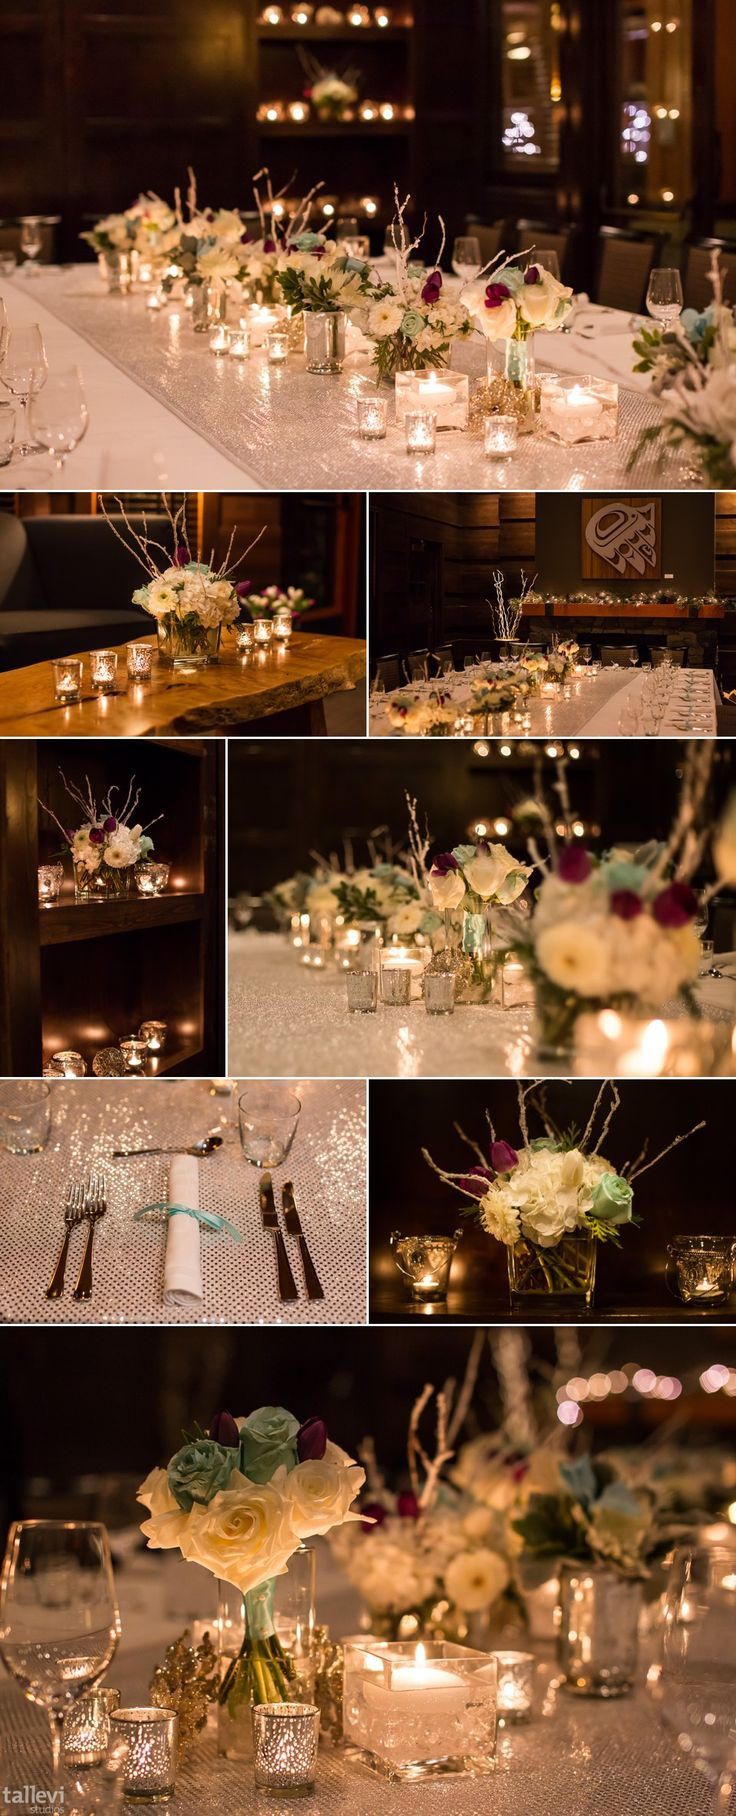 Winter wedding reception in our cozy library @nitalakelodge Whistler-wedding-planner